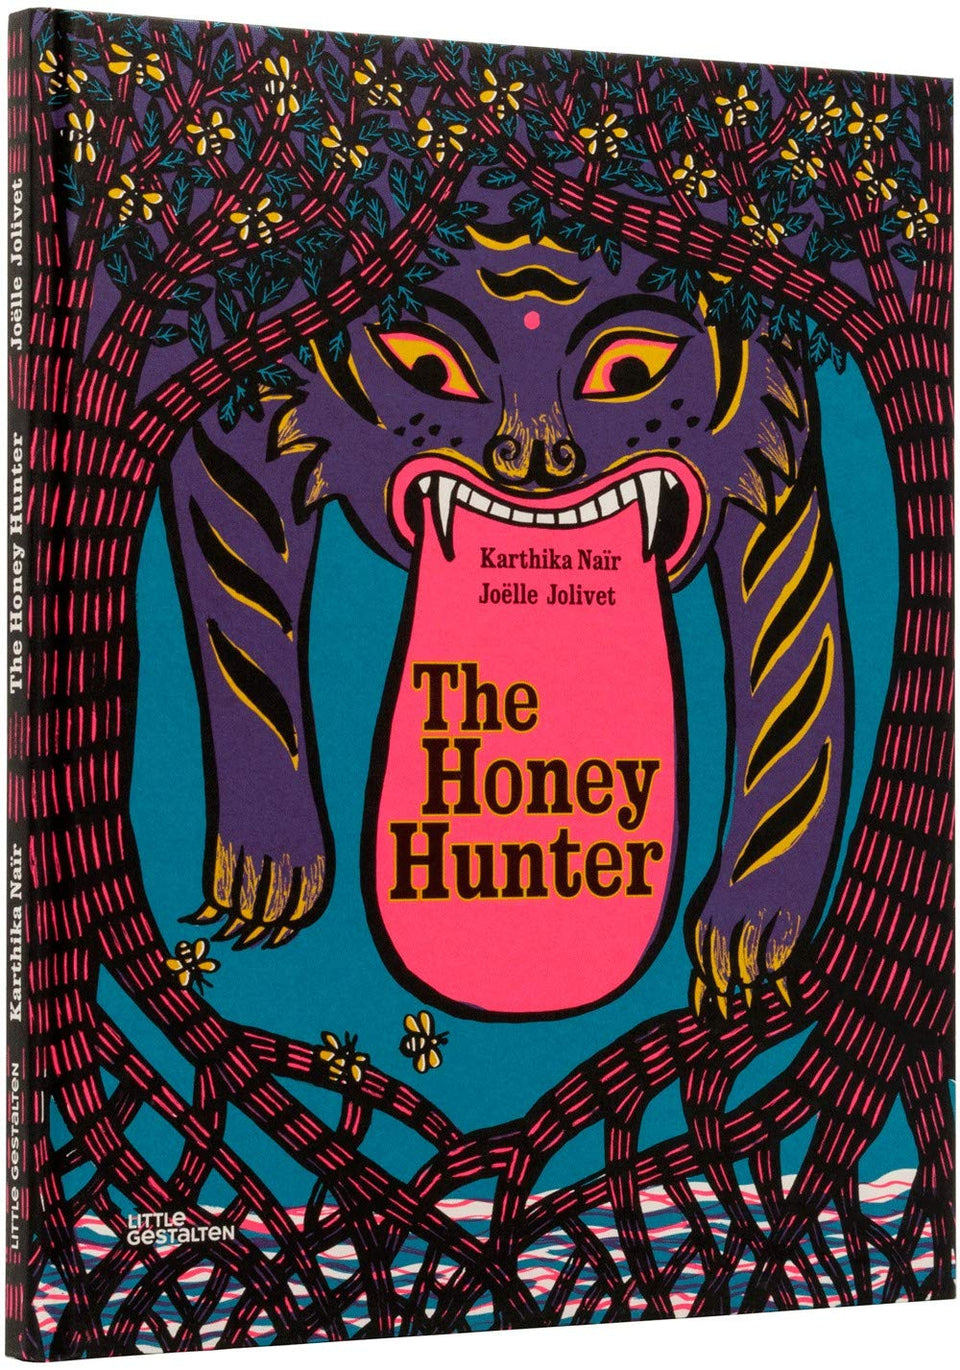 The Honey Hunter